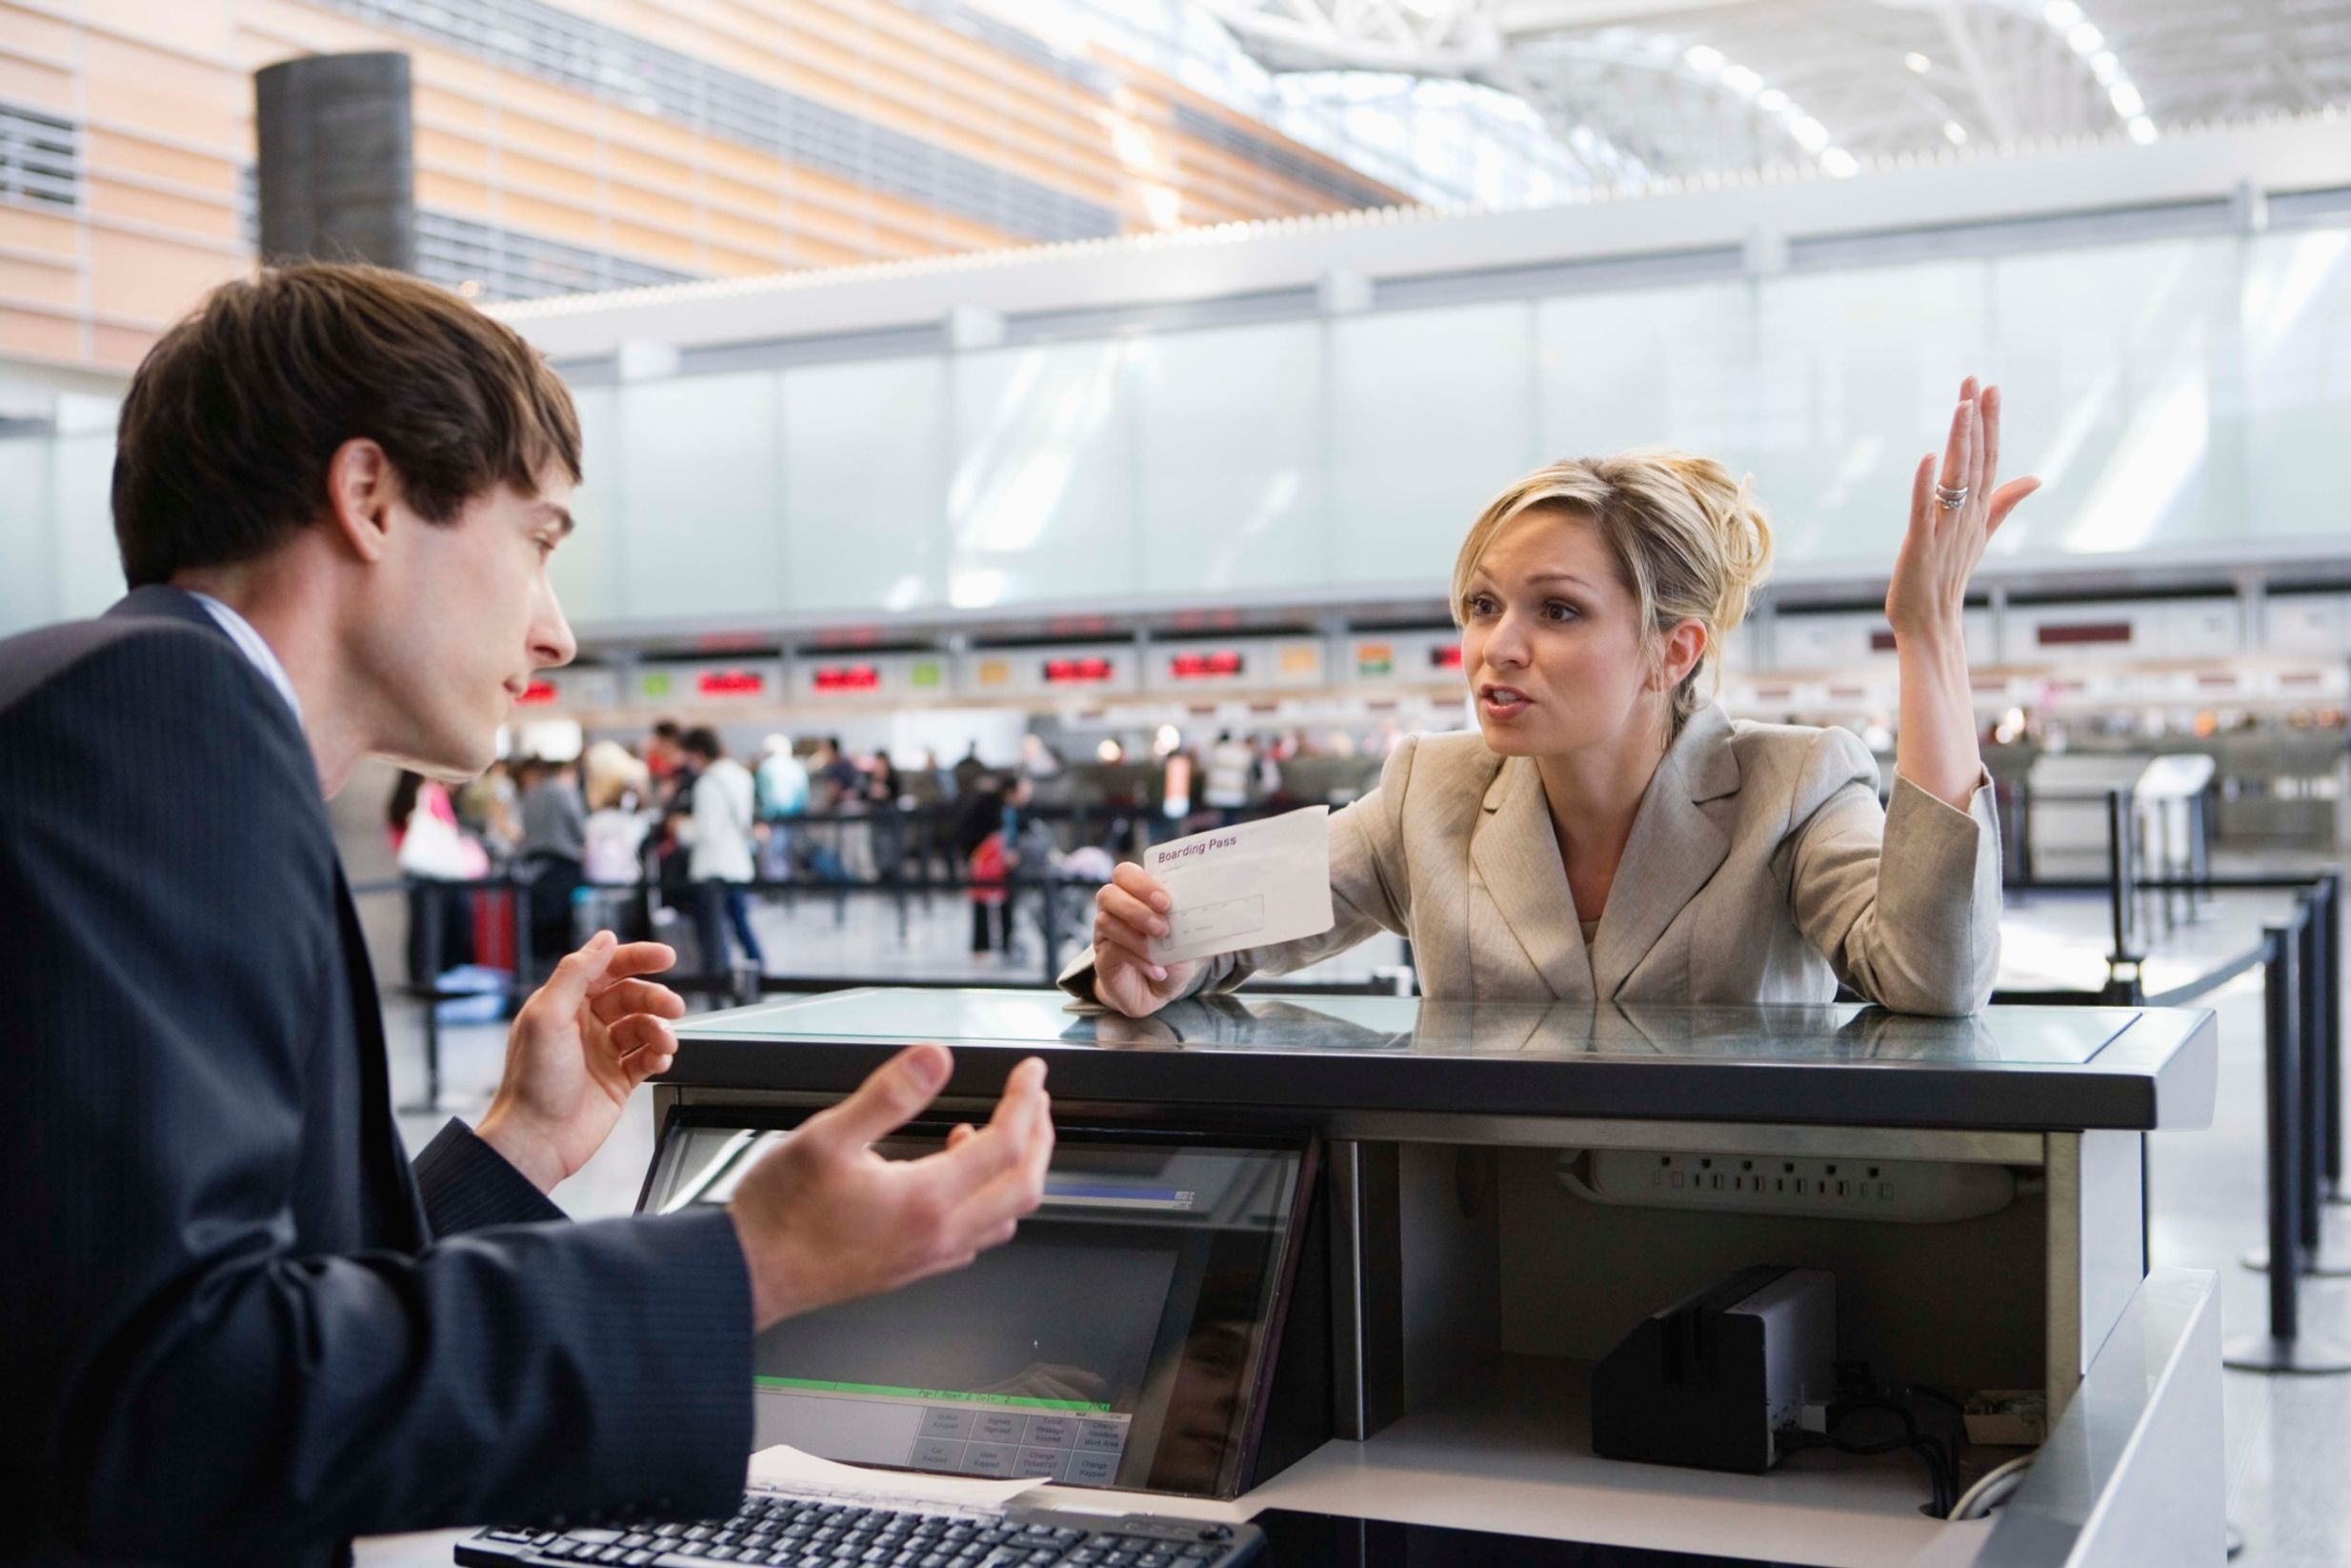 Angry woman at airport check-in